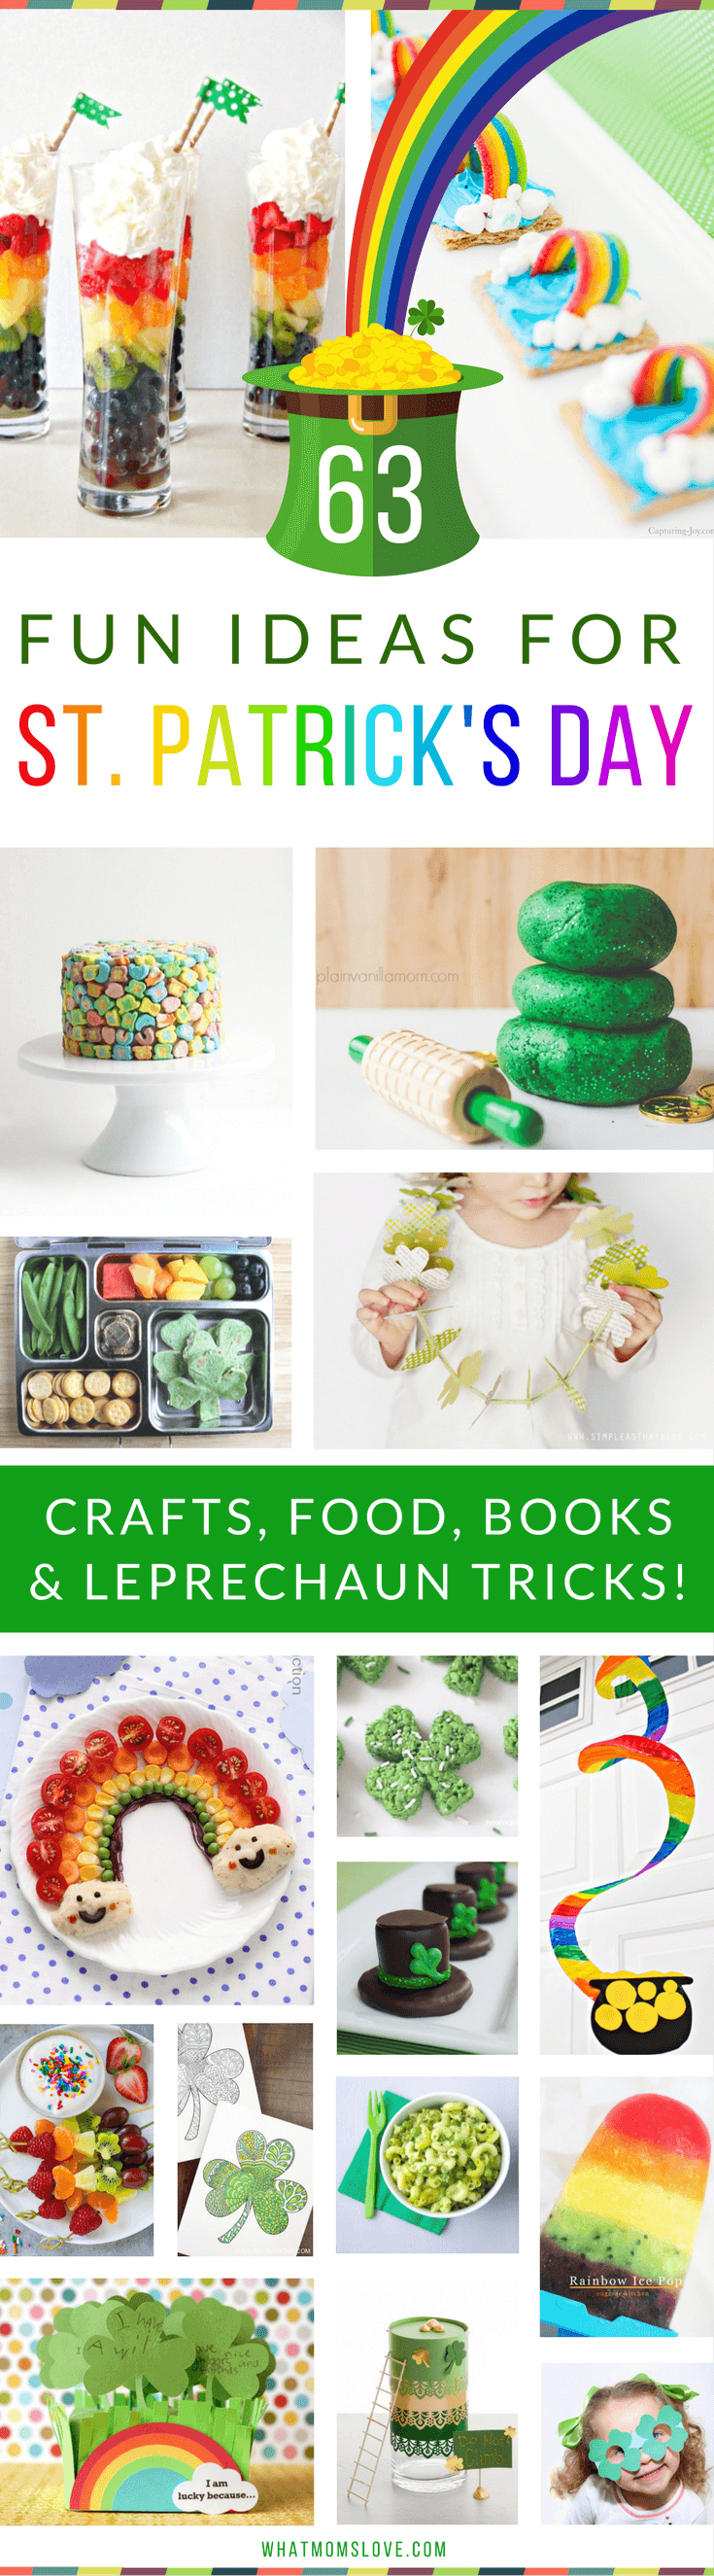 The best St Patricks Day Activities for Kids | Fun St. Patty's Crafts, Festive Food and Snacks, Books, Leprechaun tricks and traps, plus more brilliant ideas to celebrate with shamrocks and rainbows galore! Great ideas for toddlers, preschoolers and up. For the full list visit www.whatmomslove.com